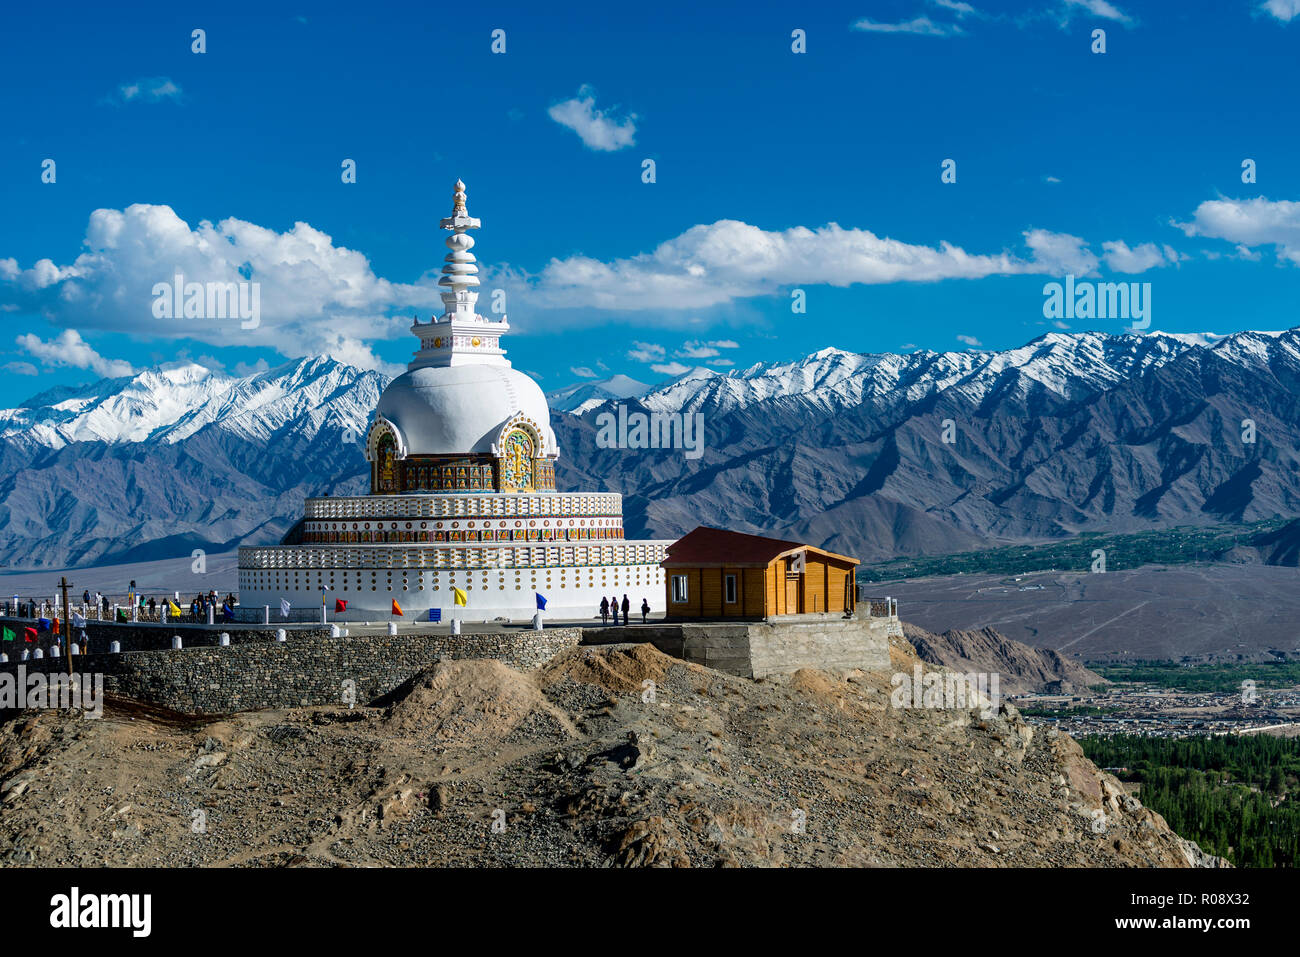 Shanti Stupa is a Buddhist white-domed stupa on a hilltop in Changspa and provides panoramic views of the surrounding landscape. Stock Photo